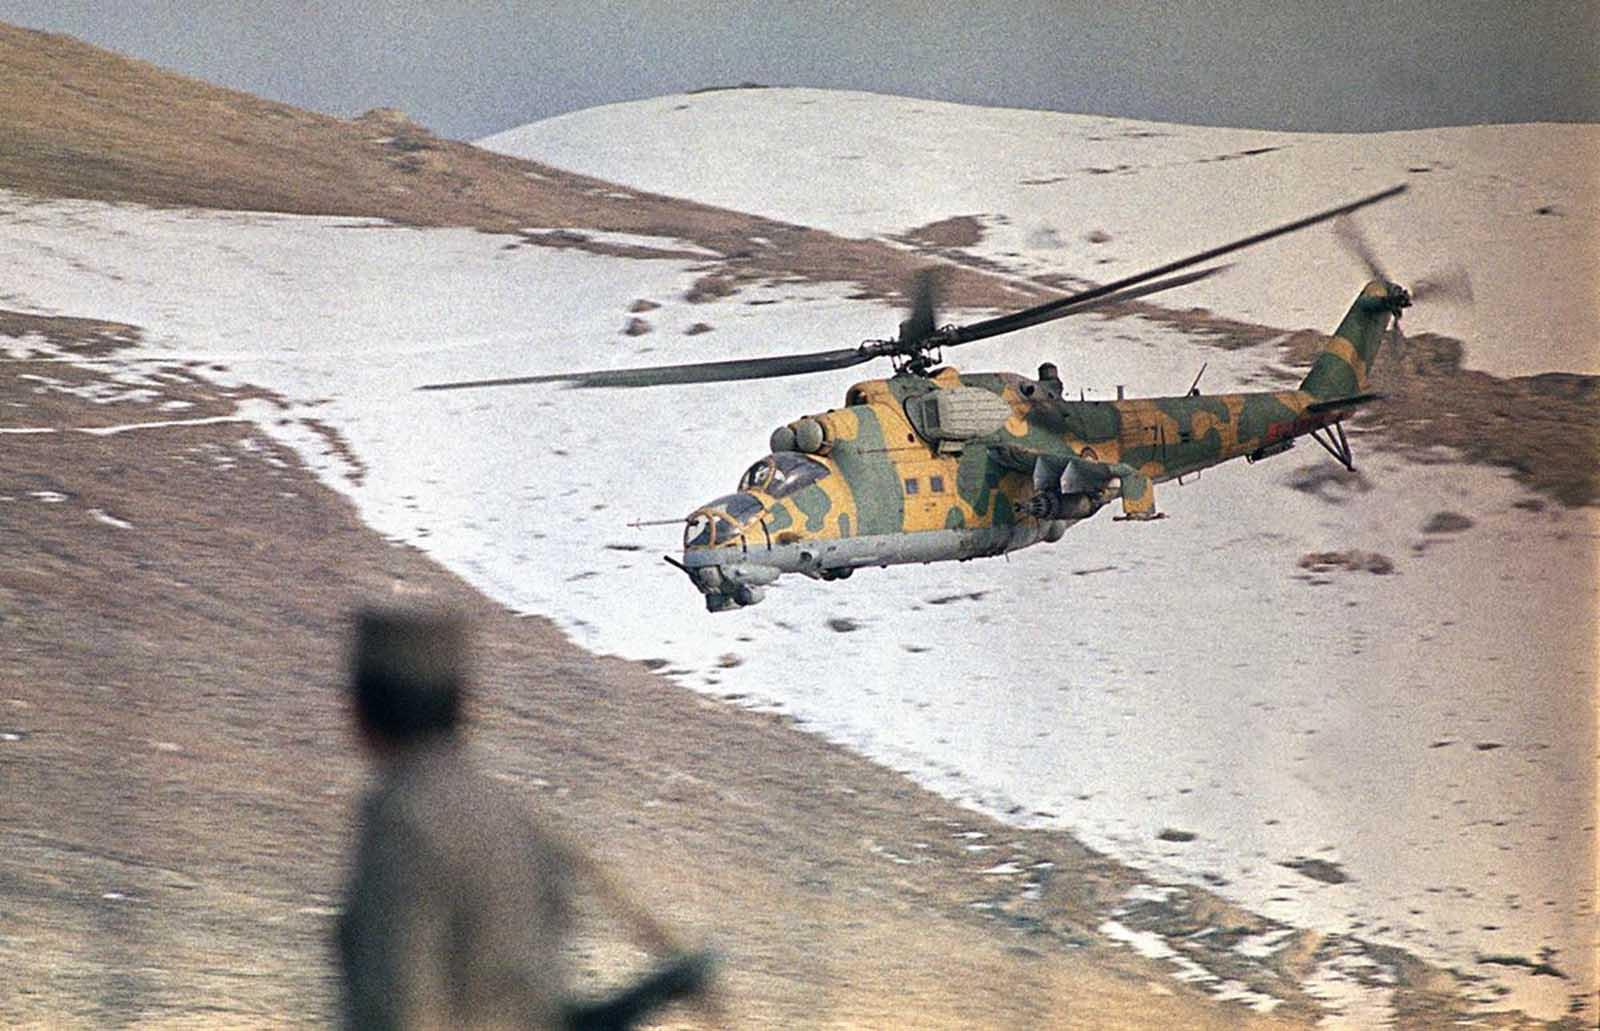 A low-flying Afghan helicopter gunship in snow-capped valley along Salang highway provides cover for a Soviet convoy sending food and fuel to Kabul, Afghanistan, on January 30, 1989. The convoy was attacked by Mujahideen guerrillas with rockets further up the highway, with Afghan government troops returning fire with artillery.